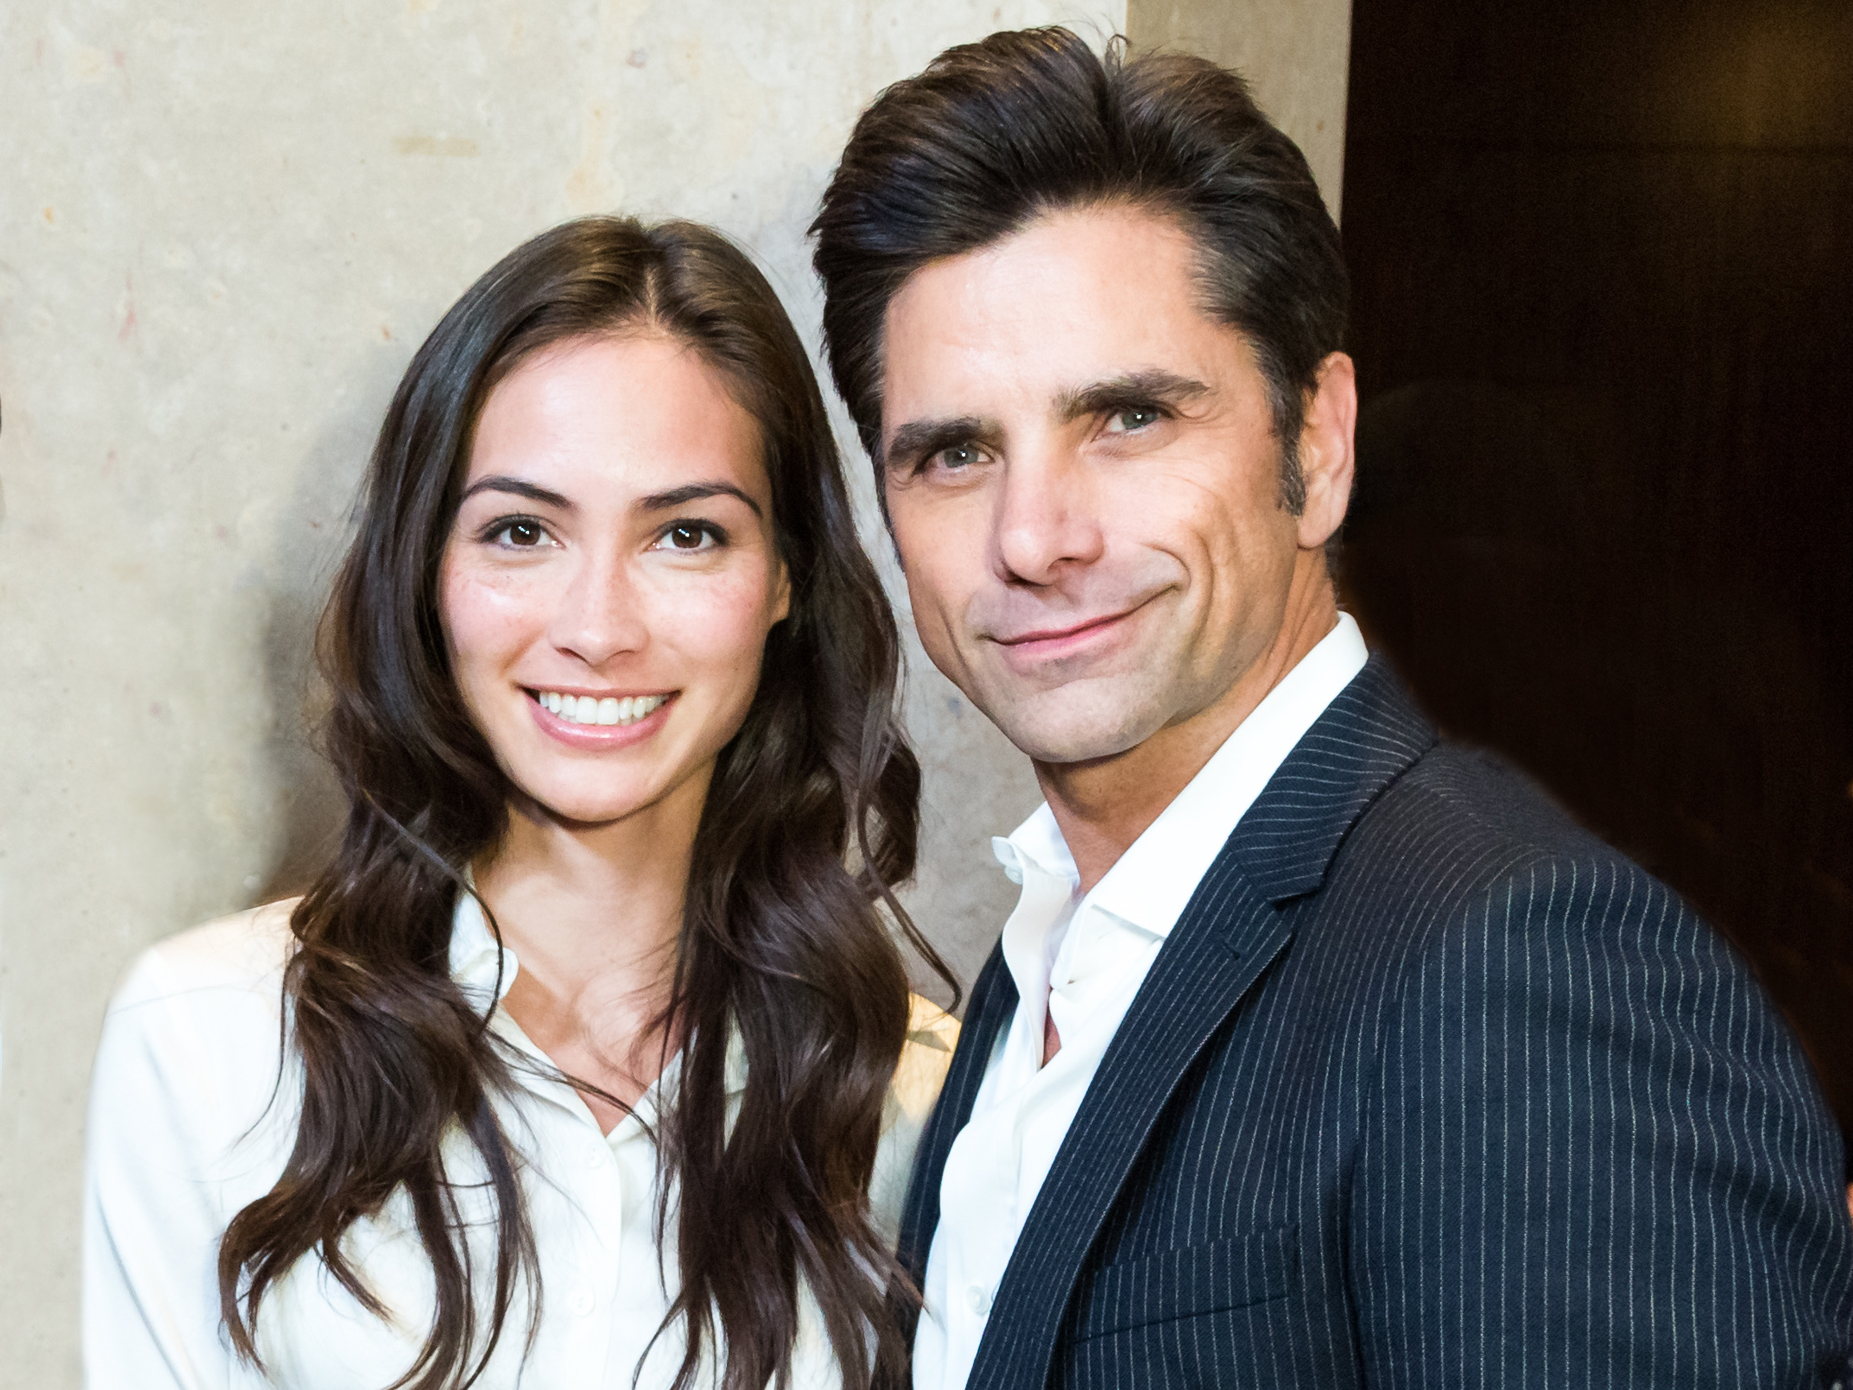 John StamosIs Expecting His First Child with Fiancée Caitlin McHugh